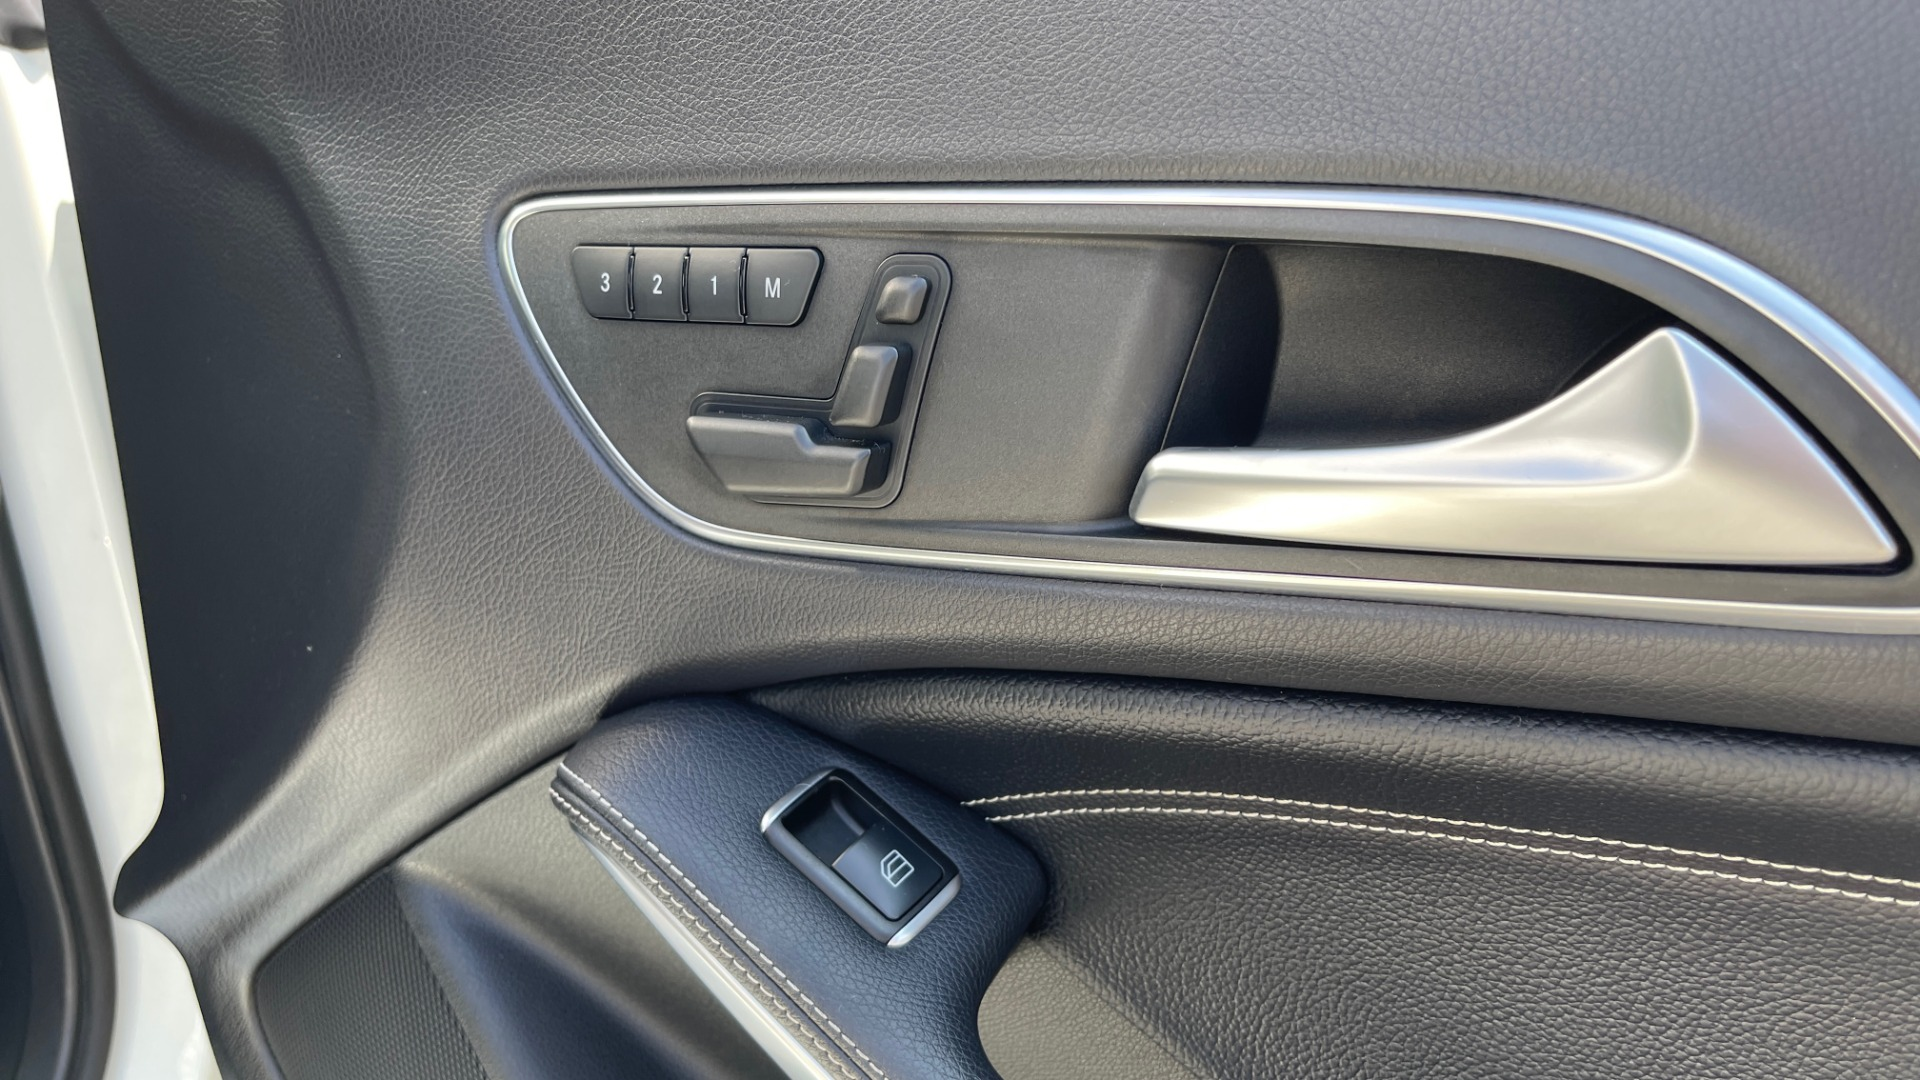 Used 2014 Mercedes-Benz CLA-Class 250 PREMIUM / NAV / MULTIMEDIA PKG / PANO-ROOF / REARVIEW for sale $19,495 at Formula Imports in Charlotte NC 28227 56